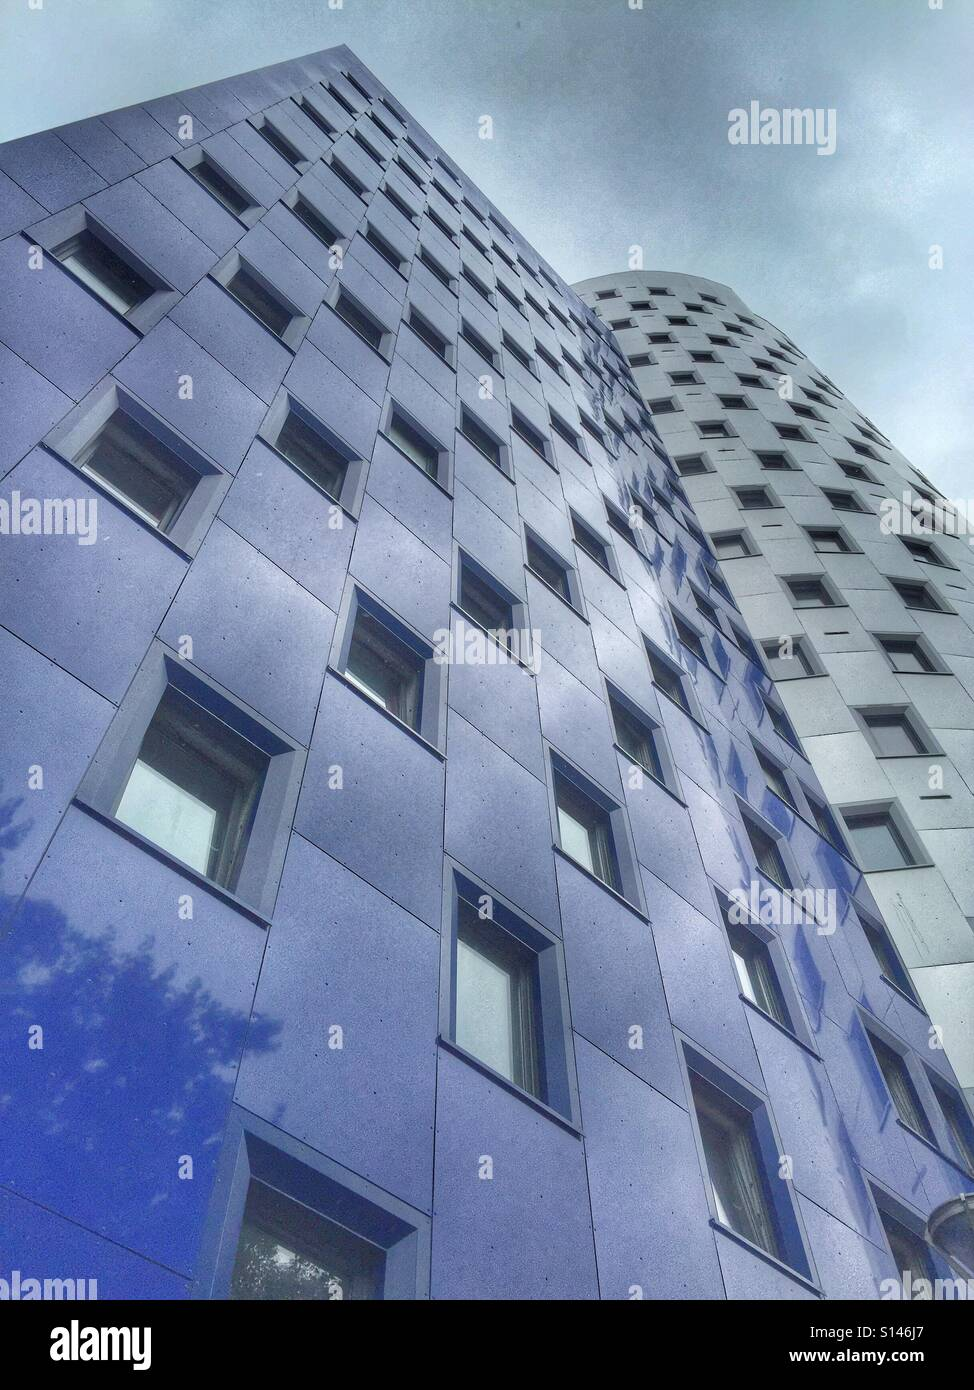 Tall building in London - Stock Image